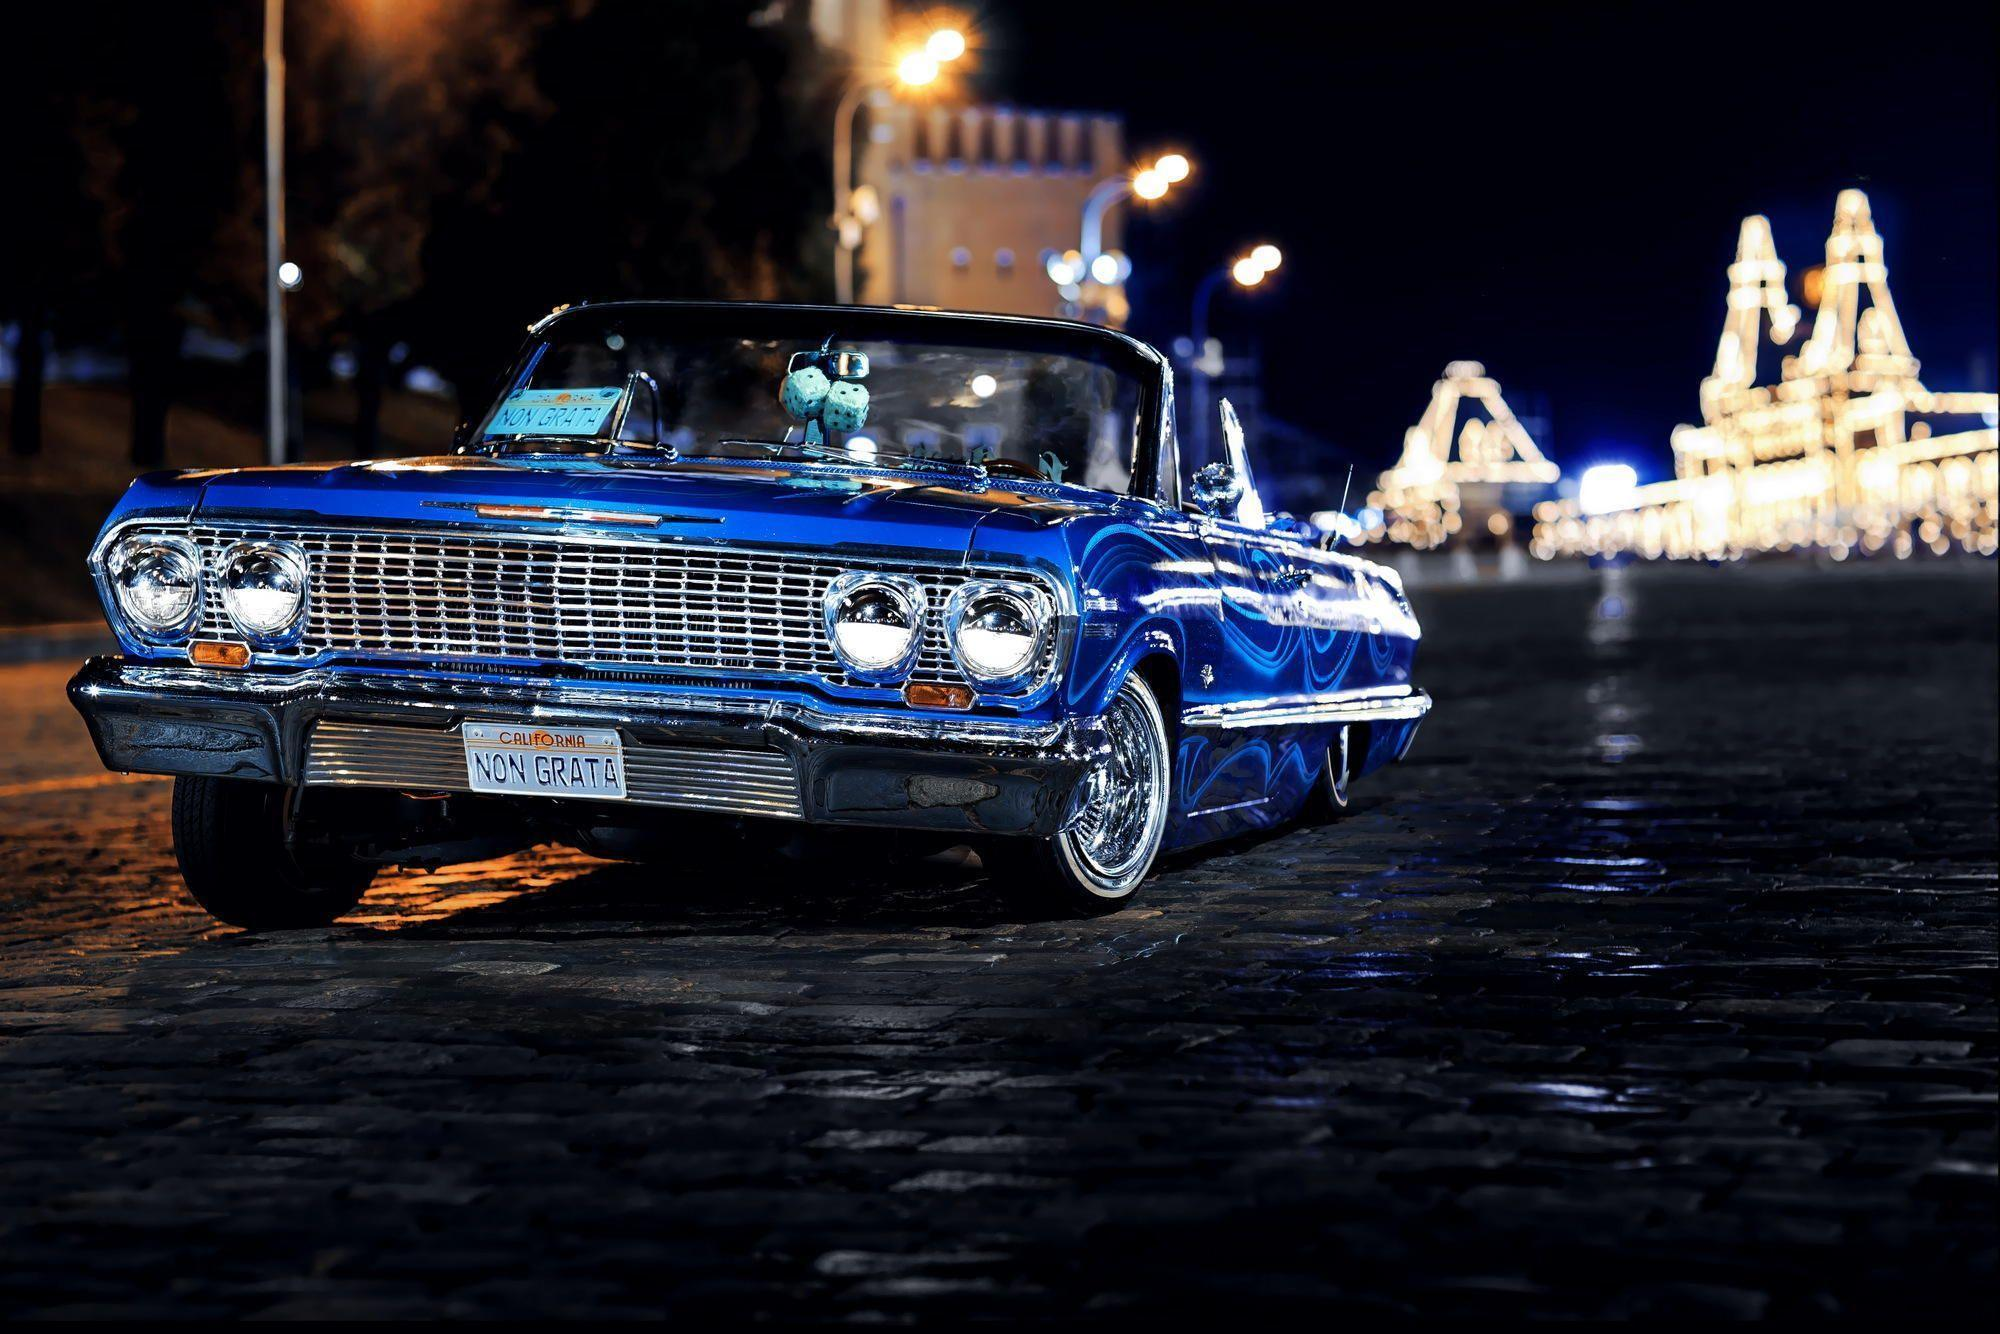 Chevrolet Impala Wallpapers - Wallpaper Cave